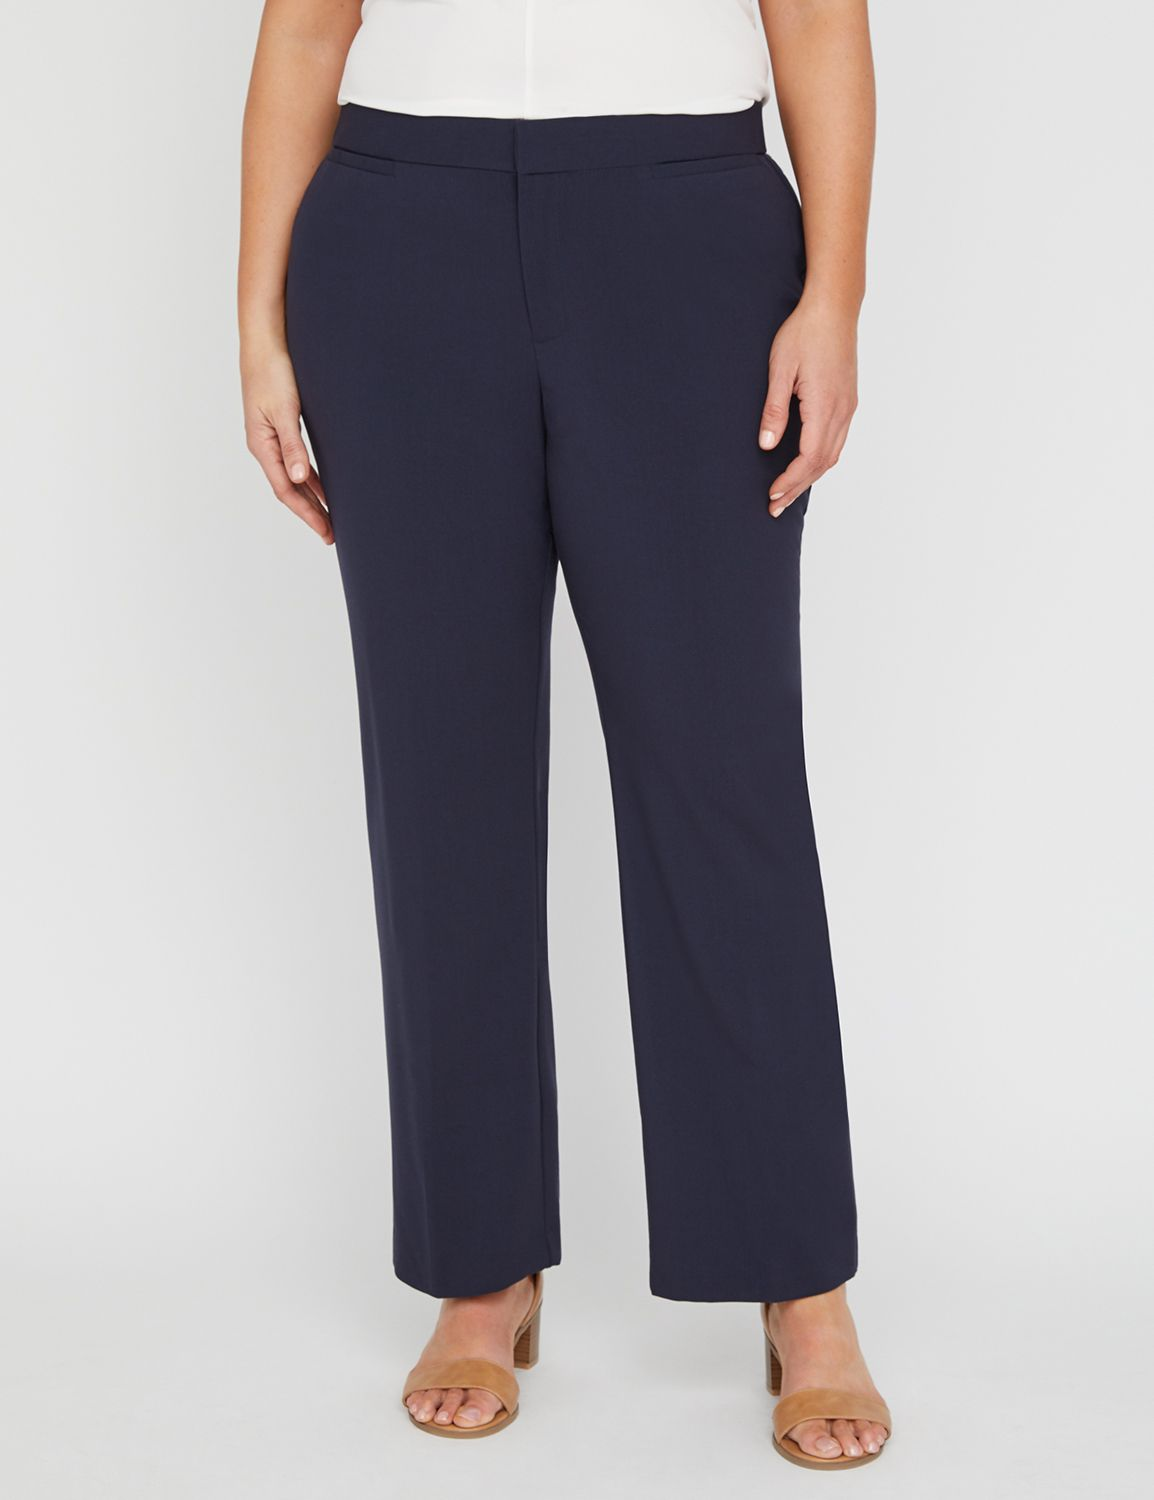 Right Fit Pant (Moderately Curvy) Right Fit Pant (Moderately Curvy) MP-300043677